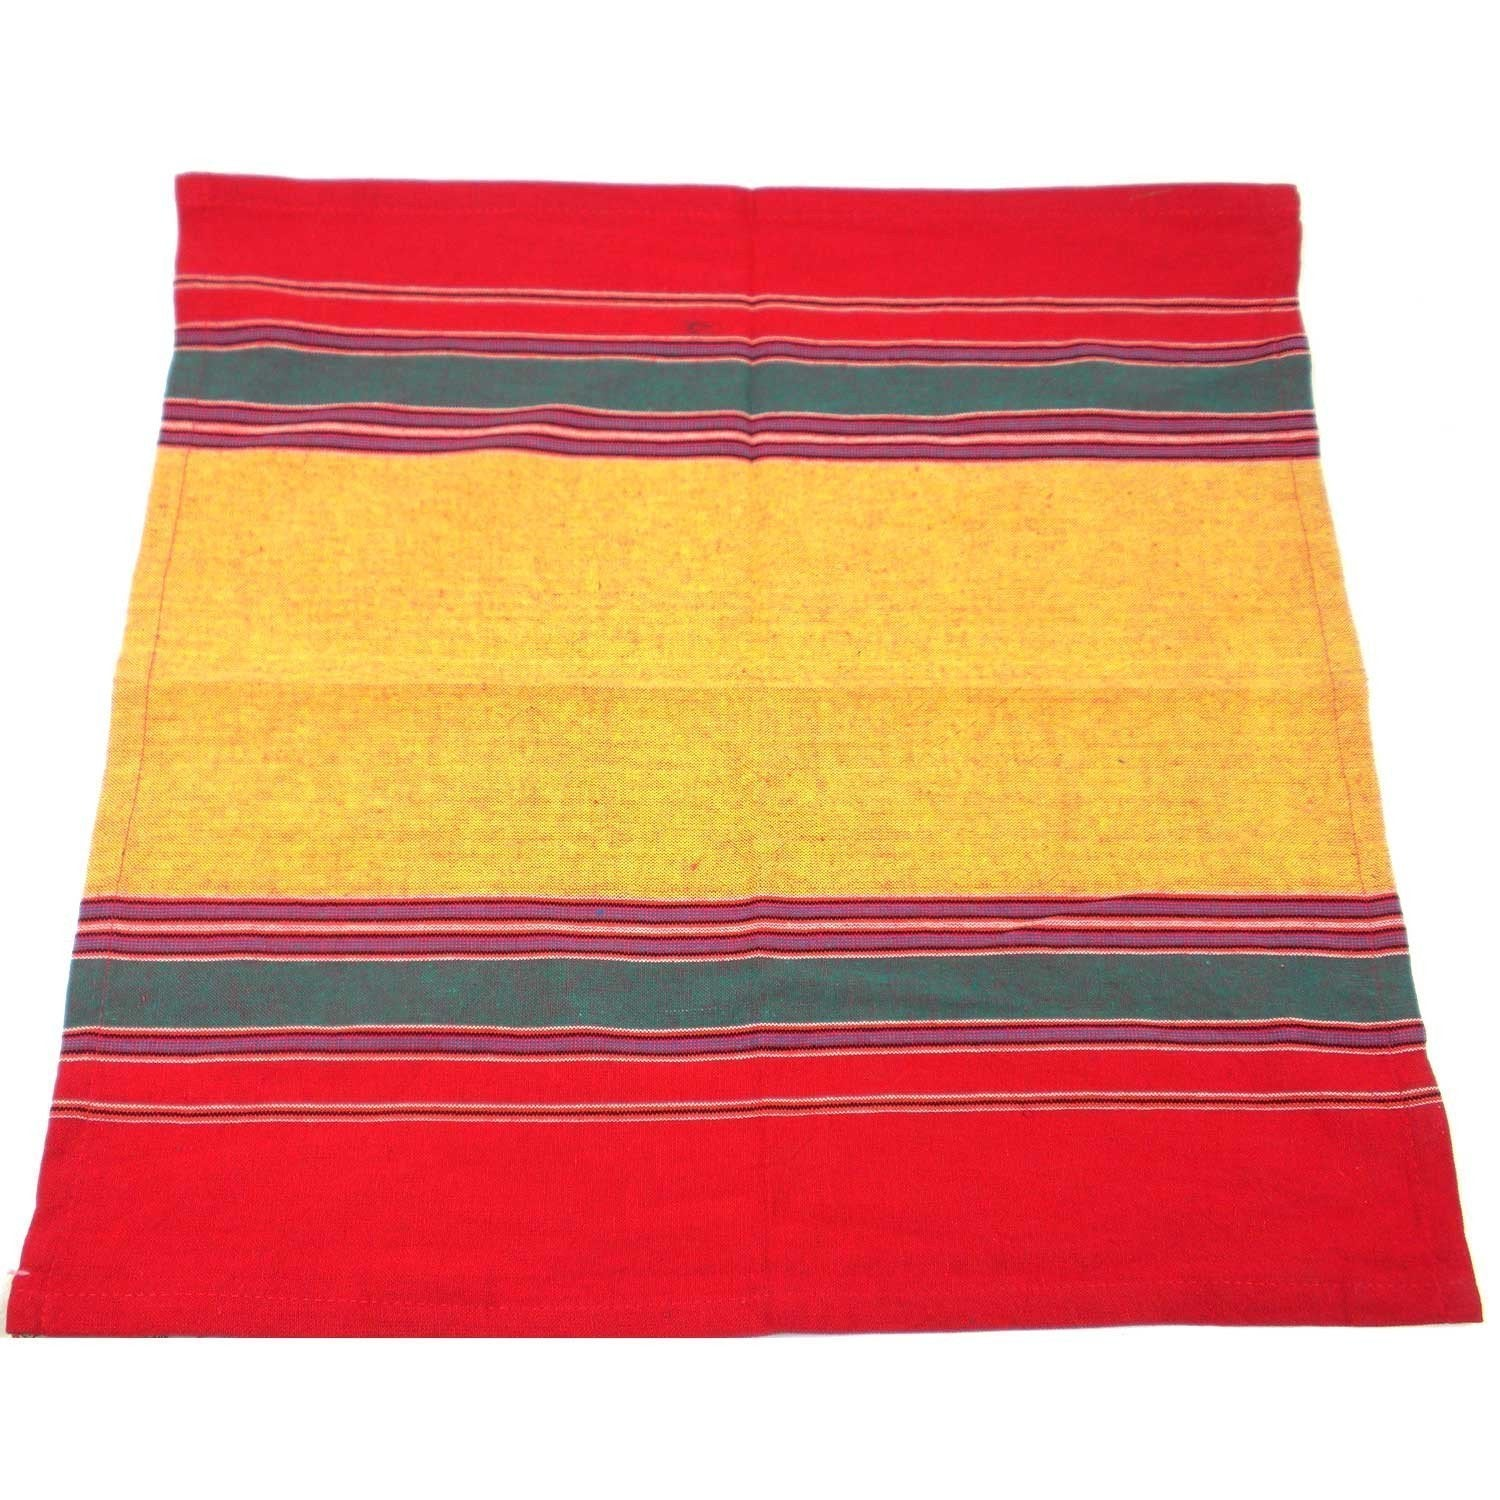 Handloomed Cotton Napkin - Yellow, Green & Red